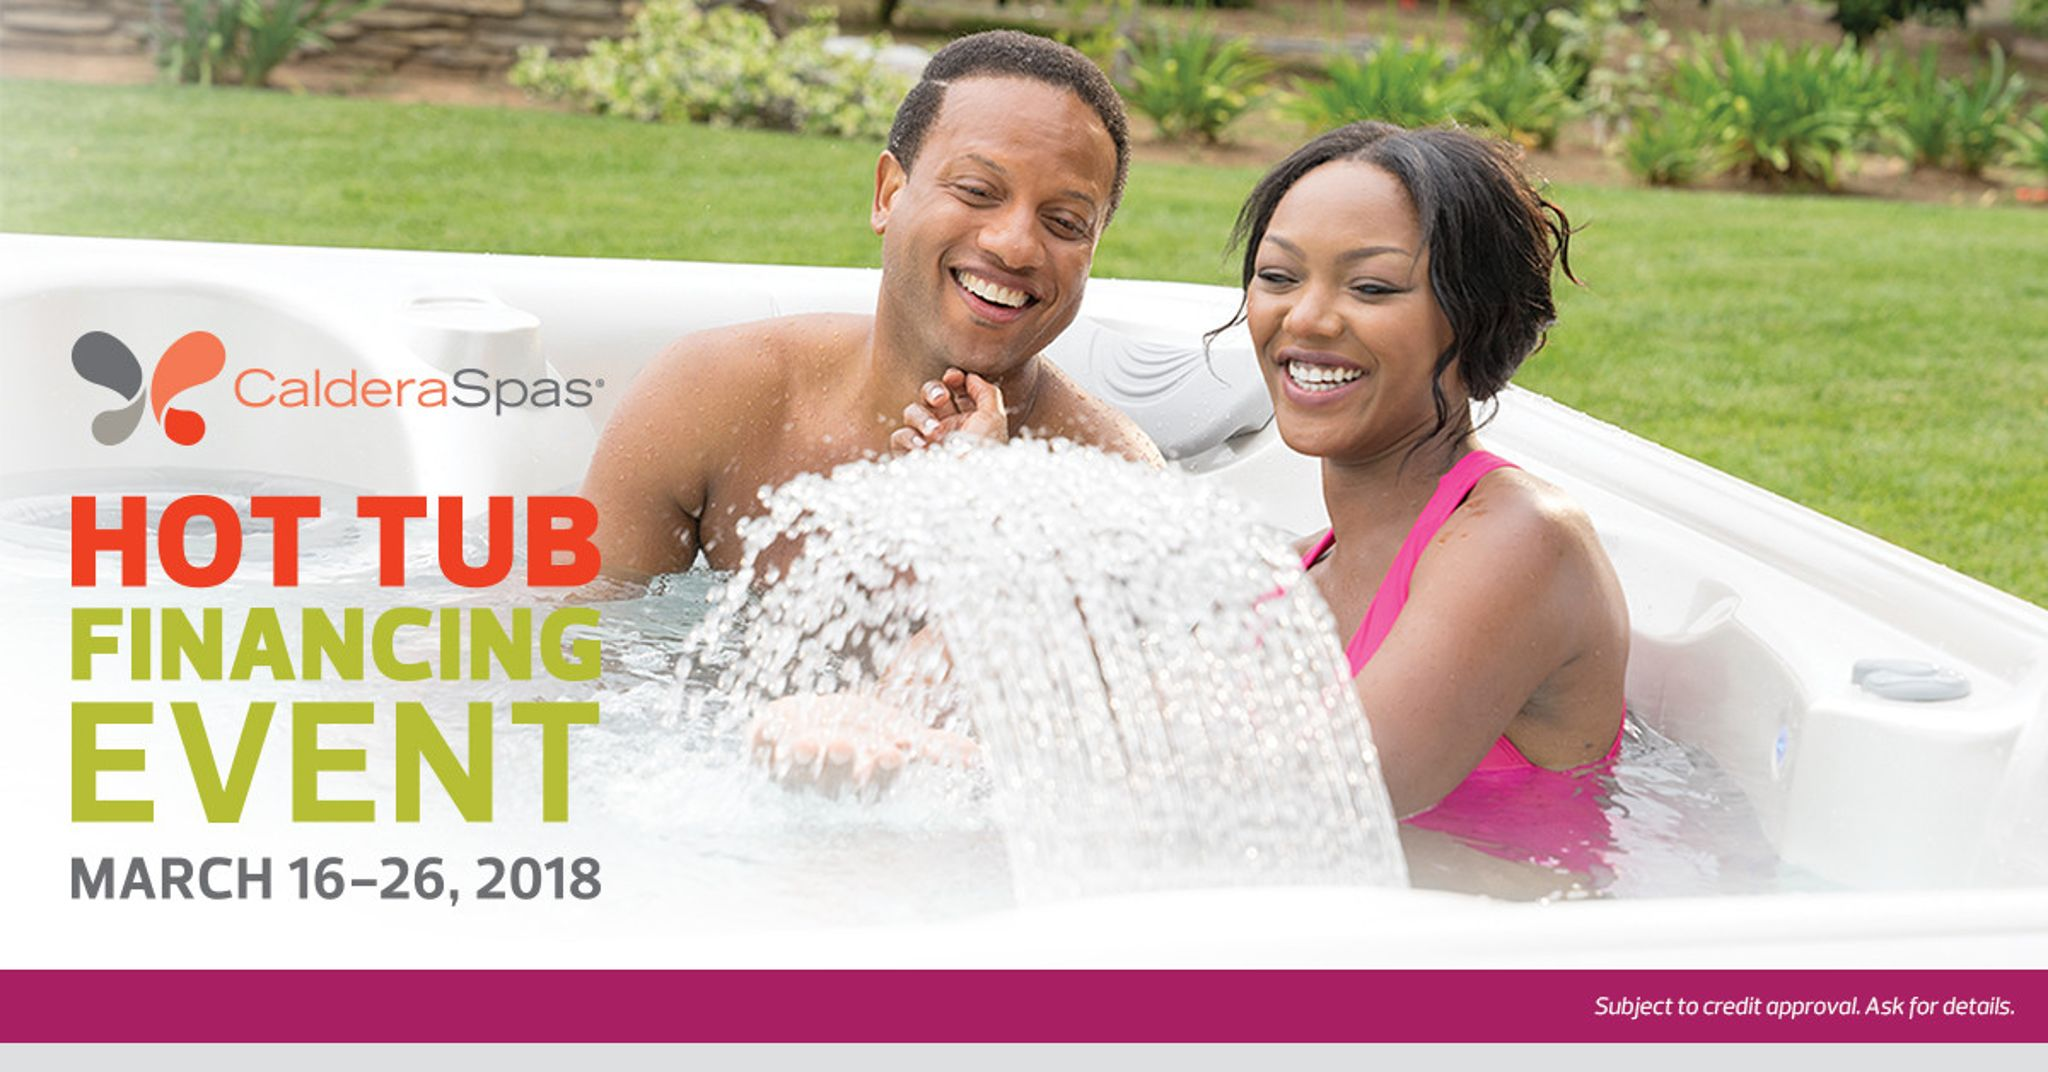 Caldera's Hot Tub Financing Event